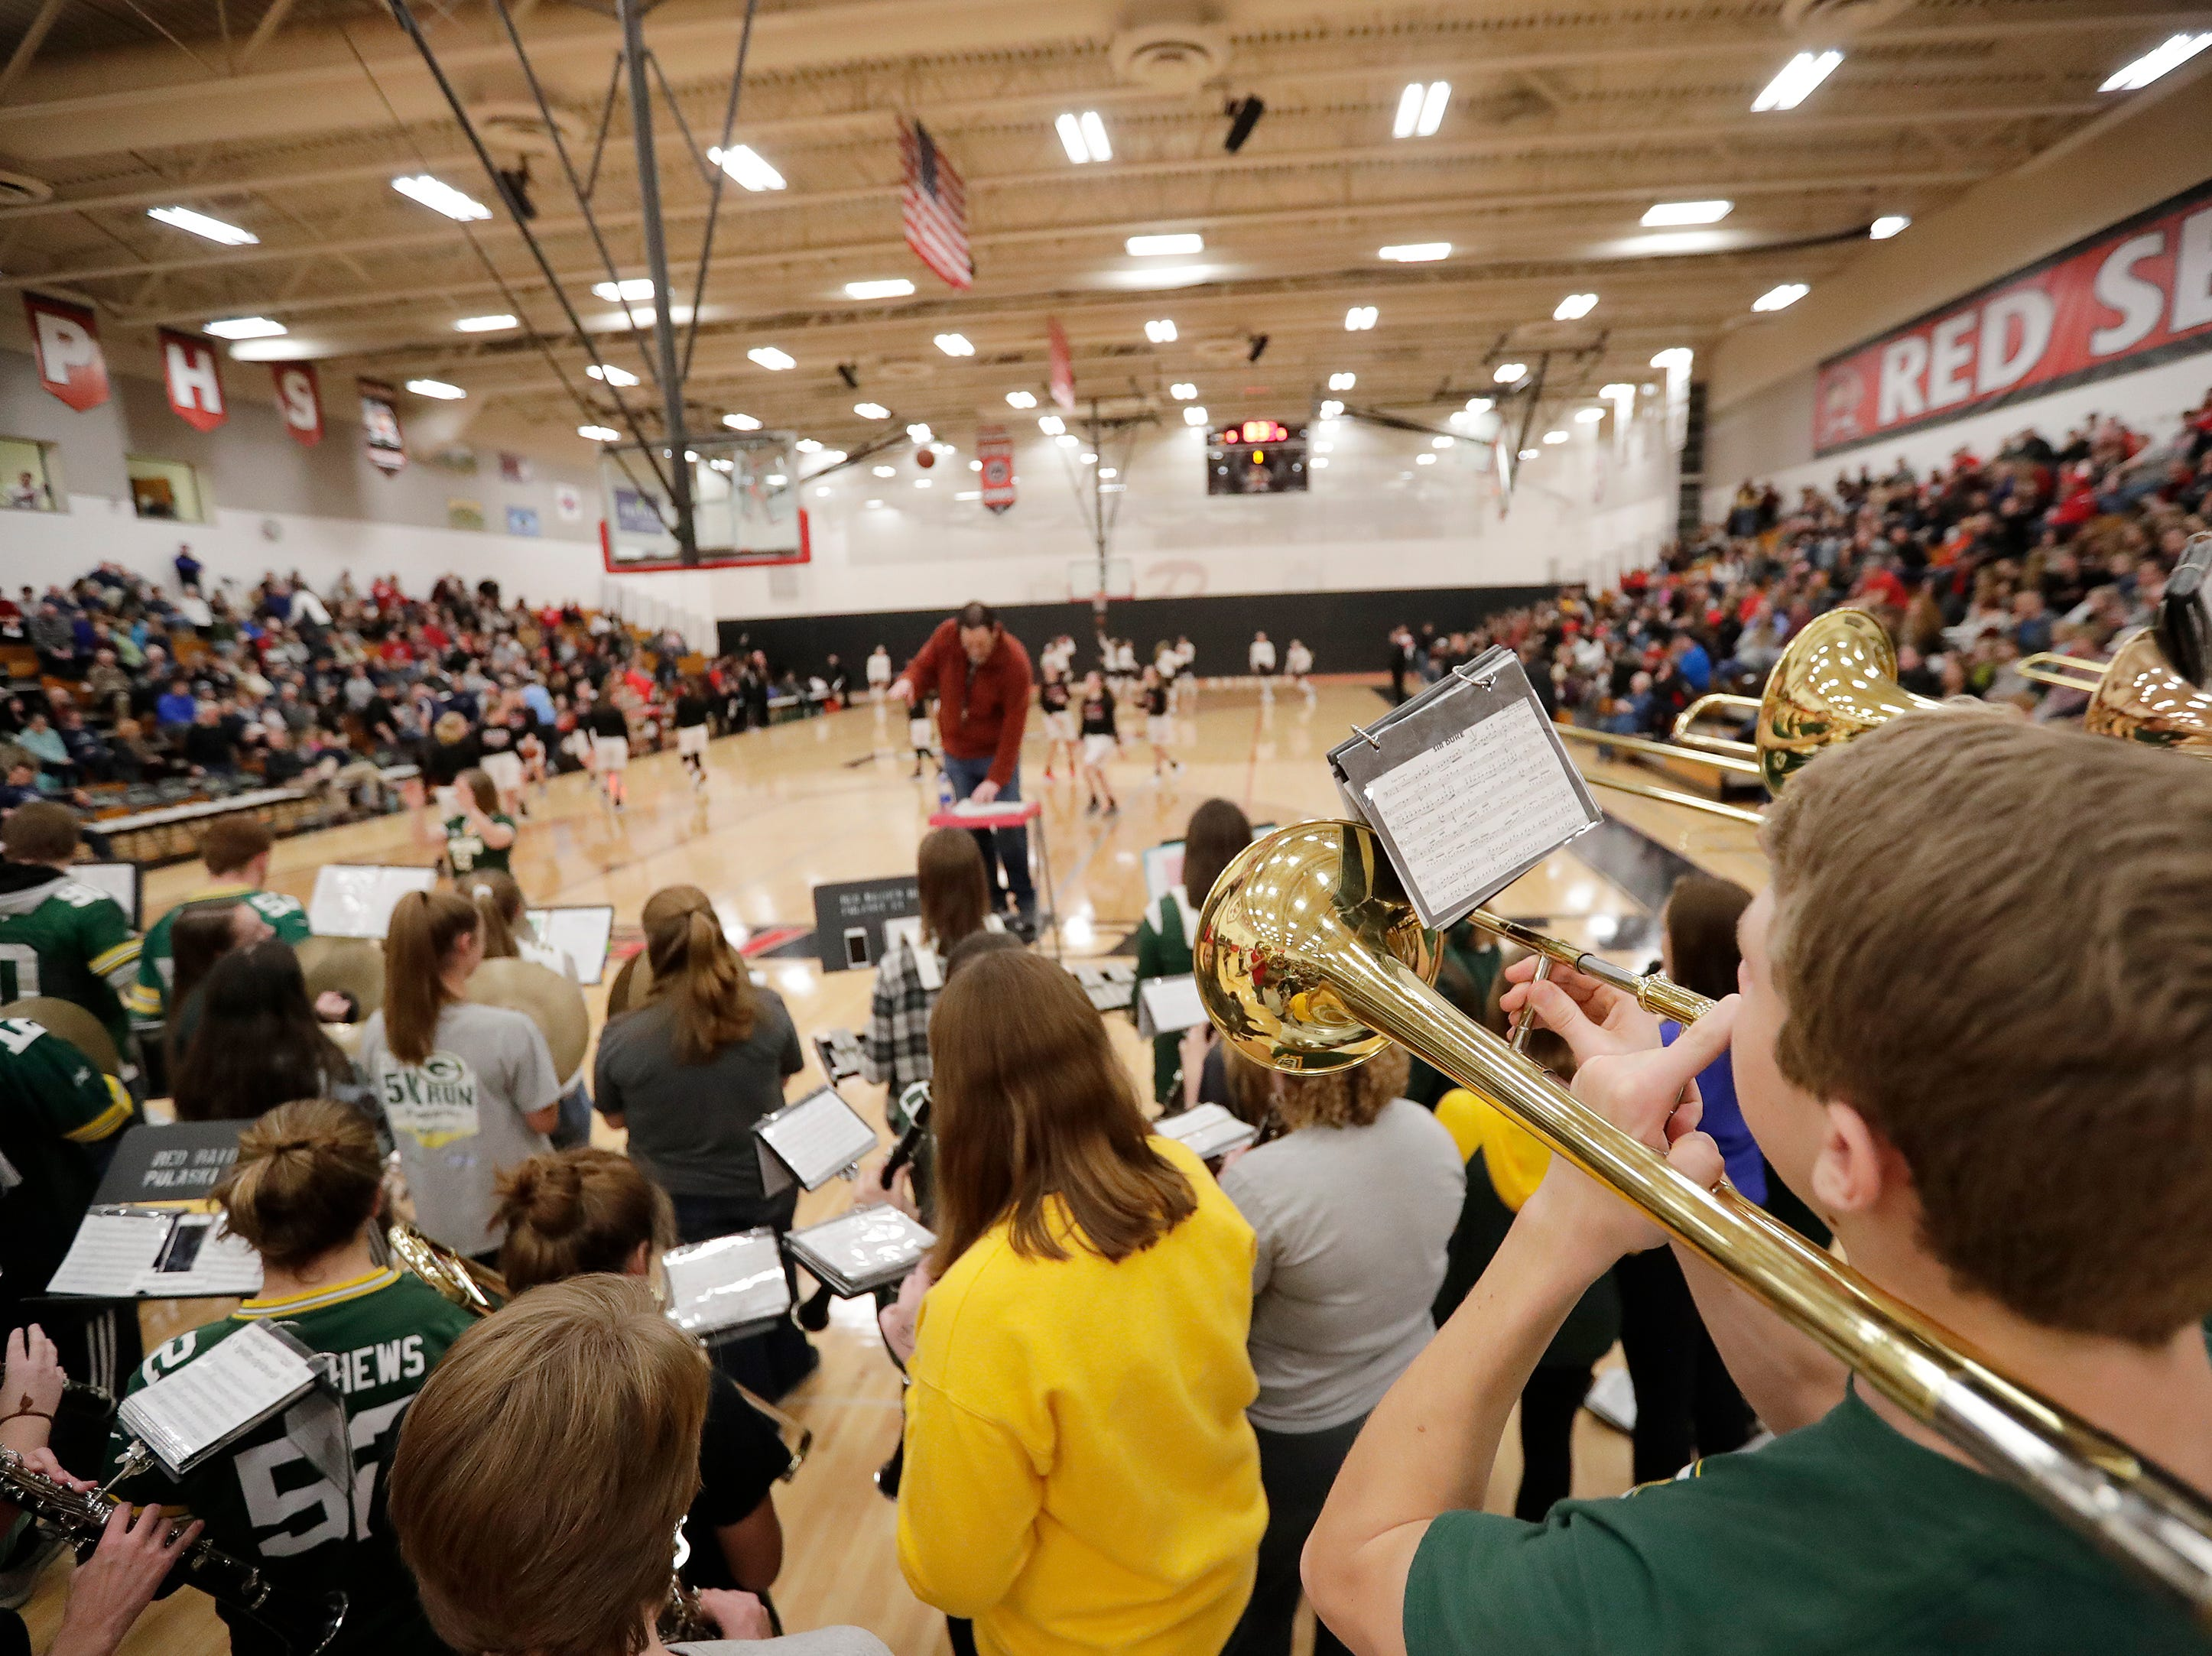 Pulaski's band performs before a girls basketball game at Pulaski high school on Friday, January 4, 2019 in Pulaski, Wis.